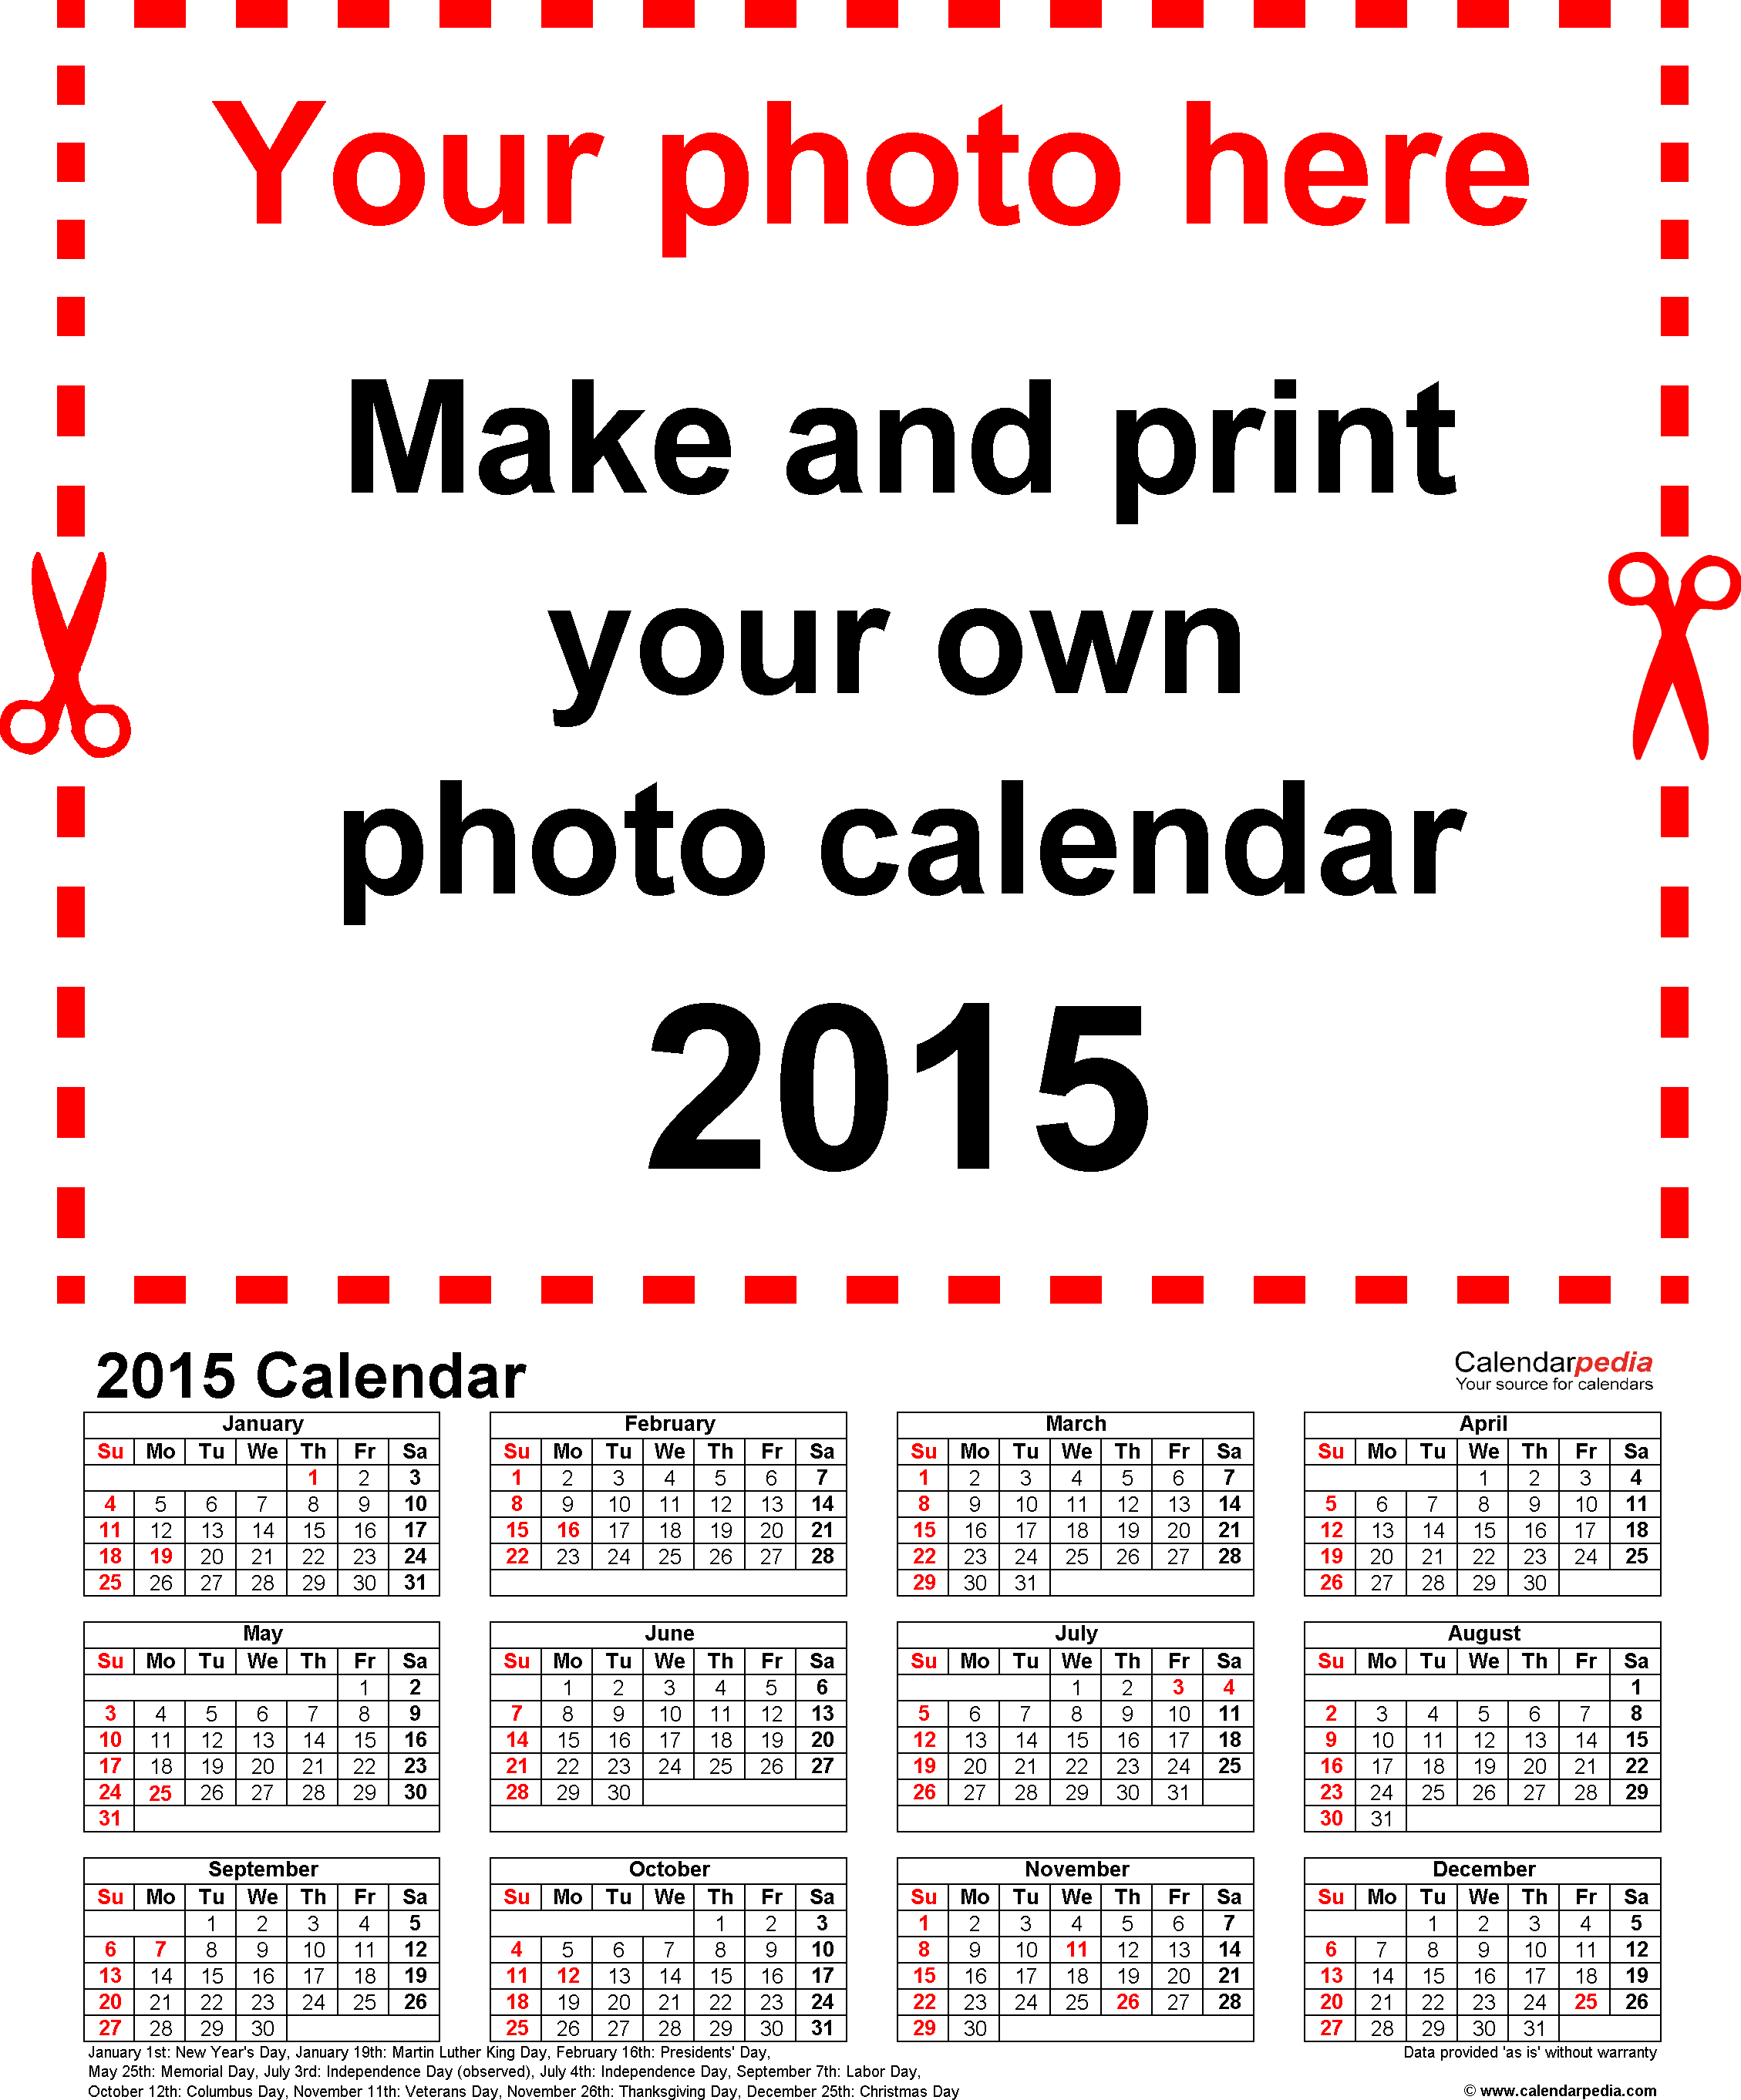 Template 4: Photo calendar 2015 for PDF, portrait format, whole year on one page